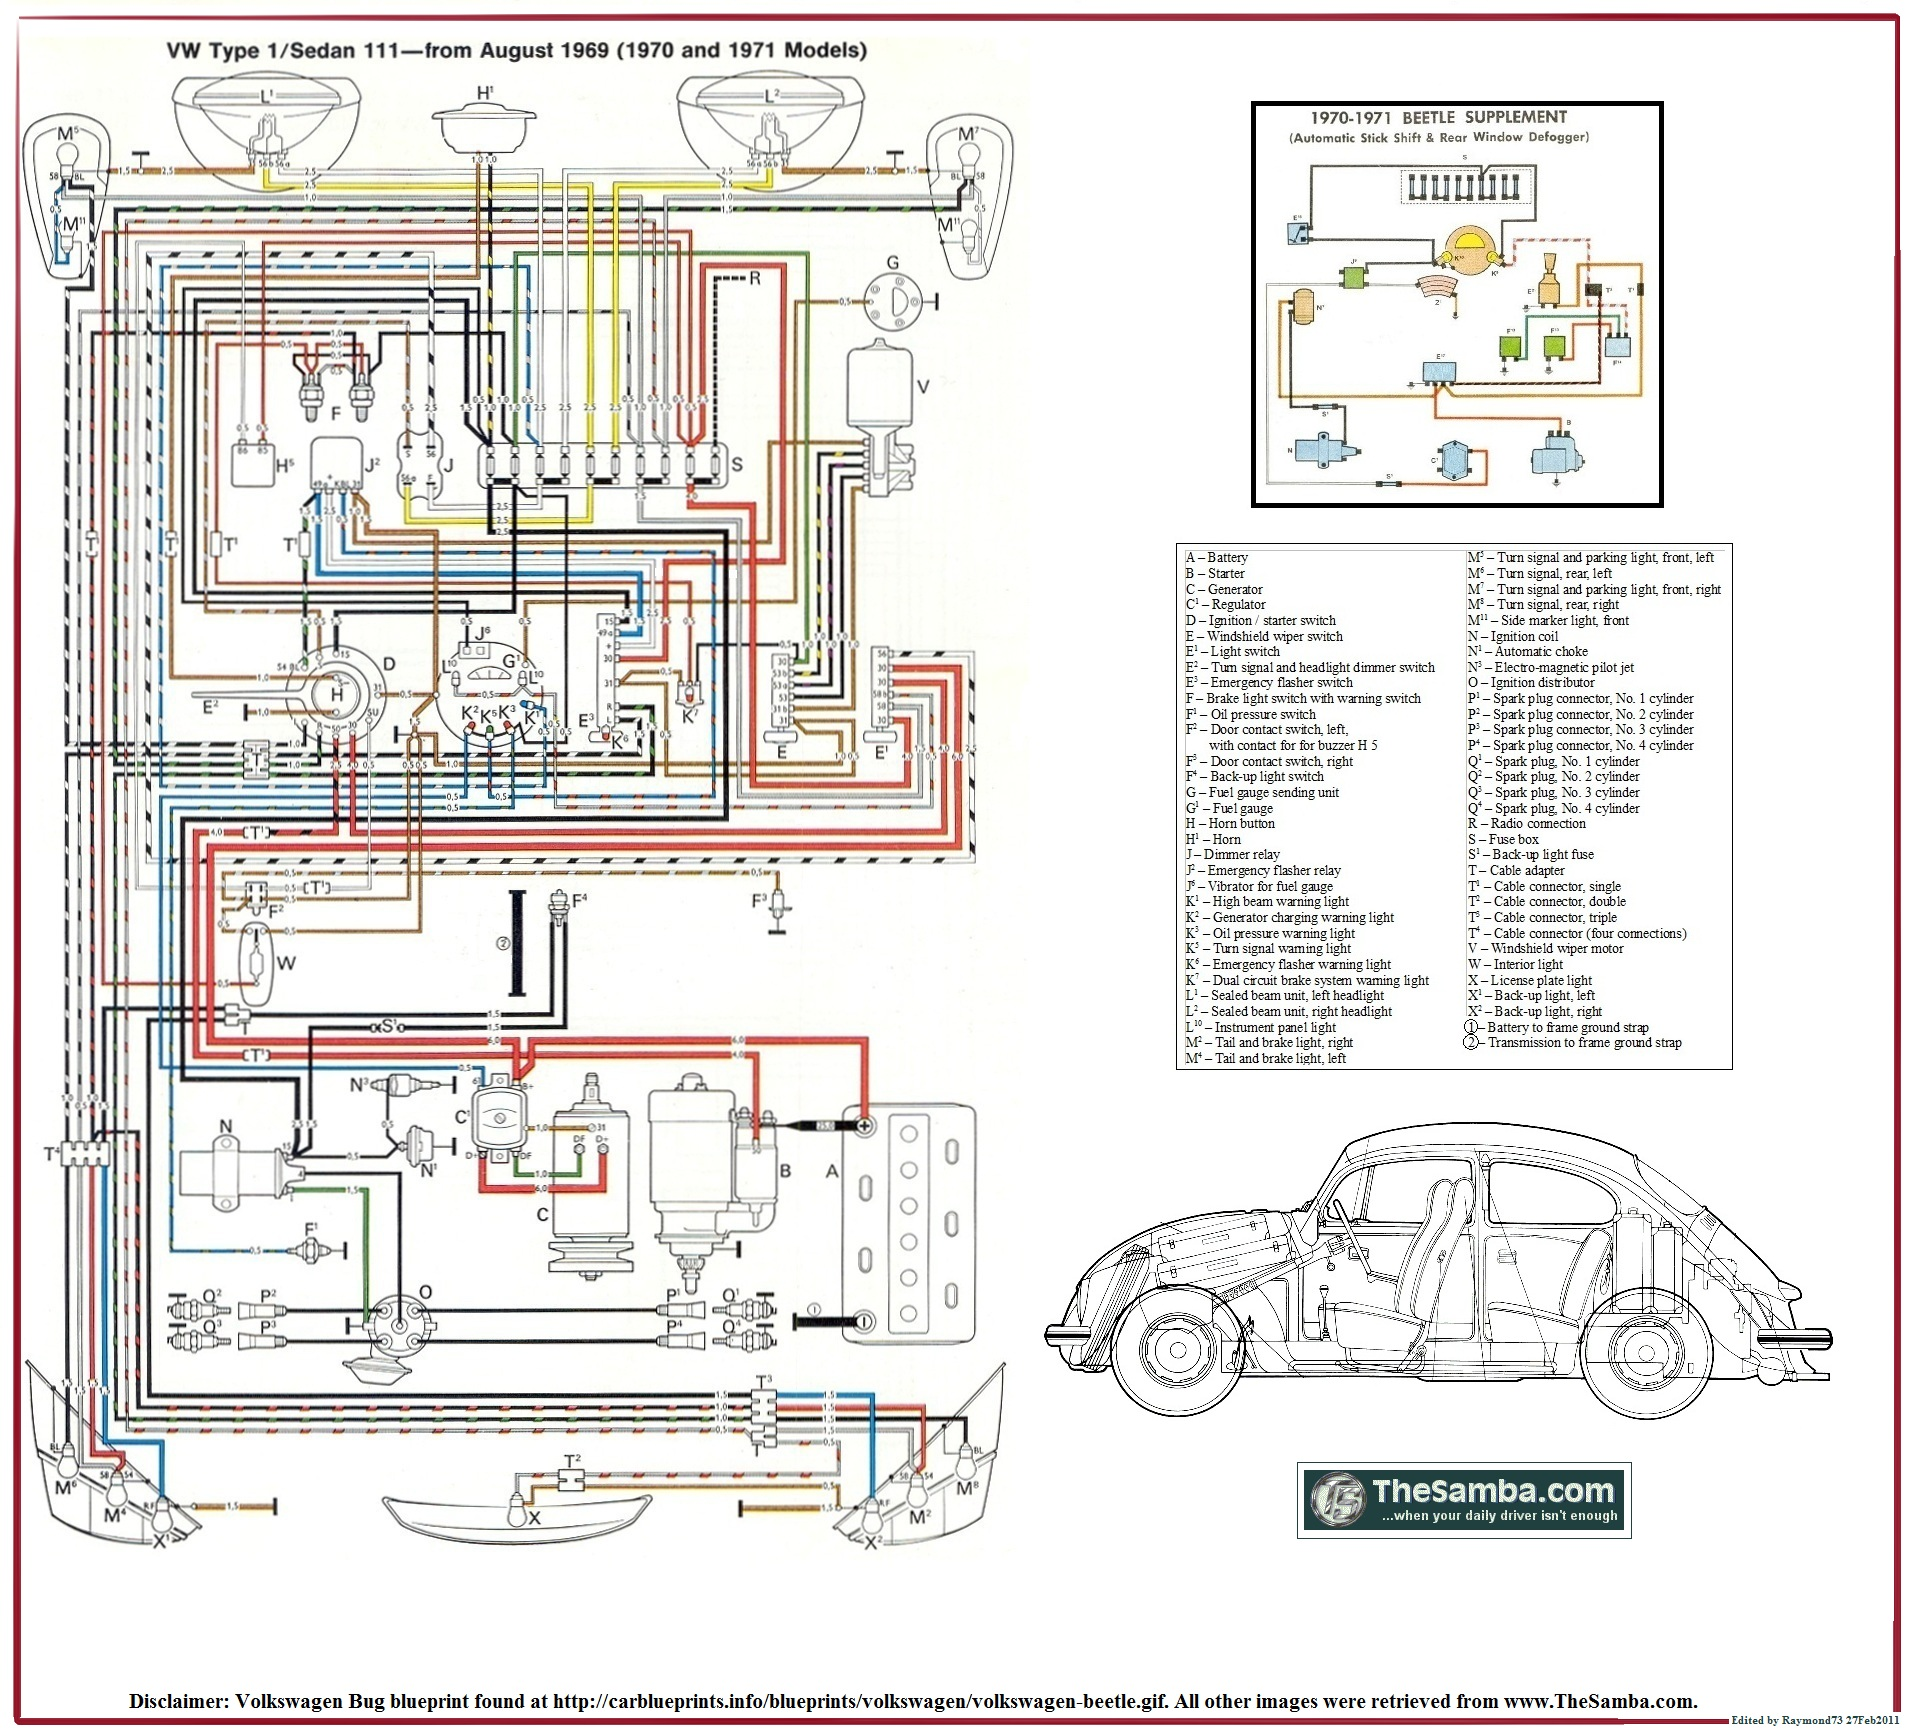 1970_VW_Type_1_Poster thesamba com beetle late model super 1968 up view topic vw beetle wiring diagram at readyjetset.co